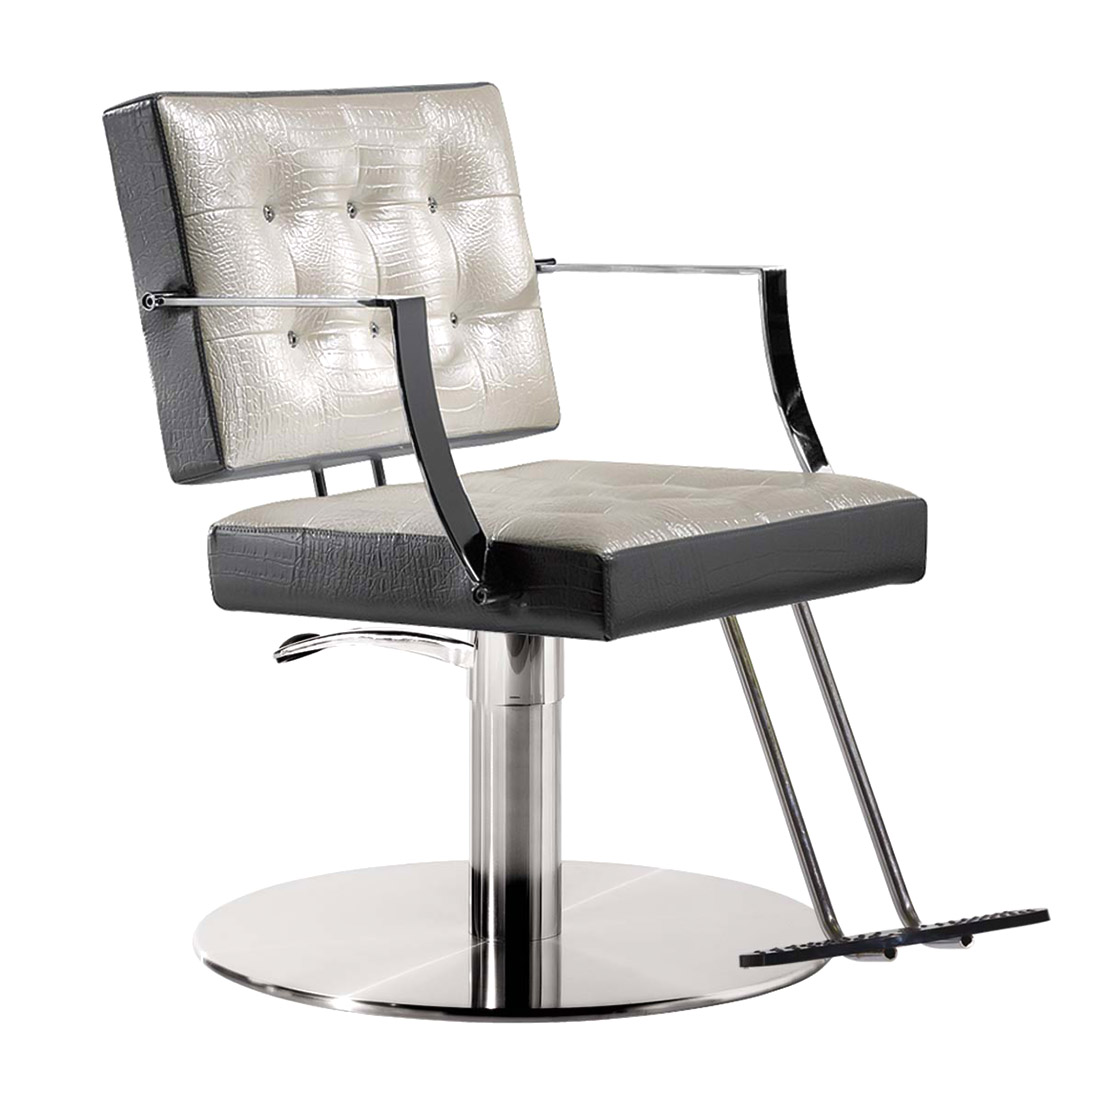 Grace Beauty Salon Chair by Salon Ambience alternative product image 1